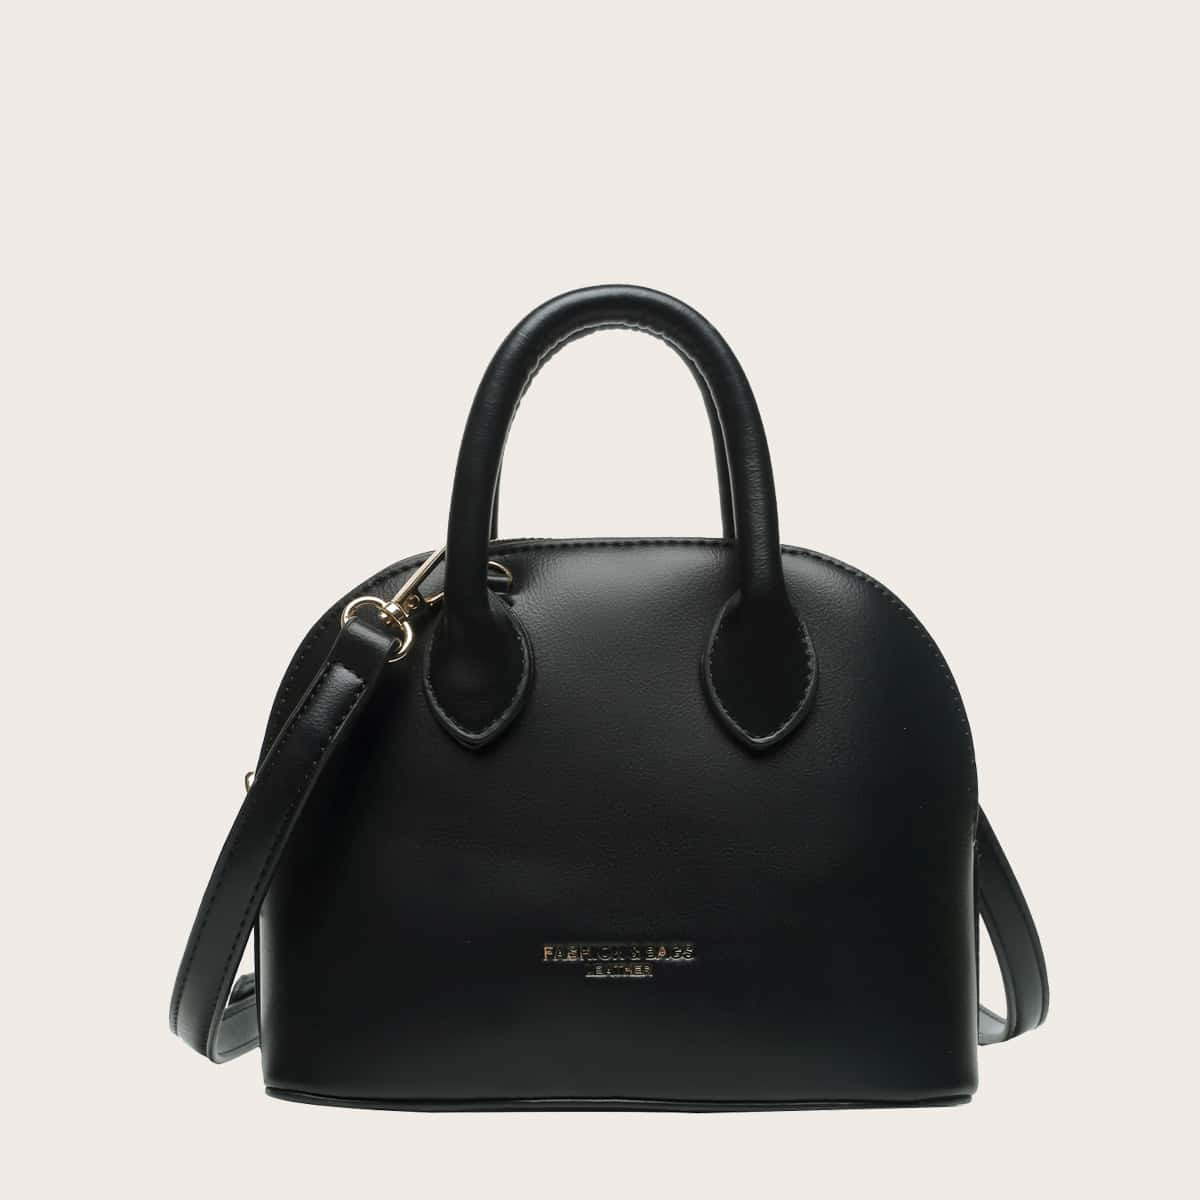 SHEIN / Minimalist Dome Bag With Double Handle